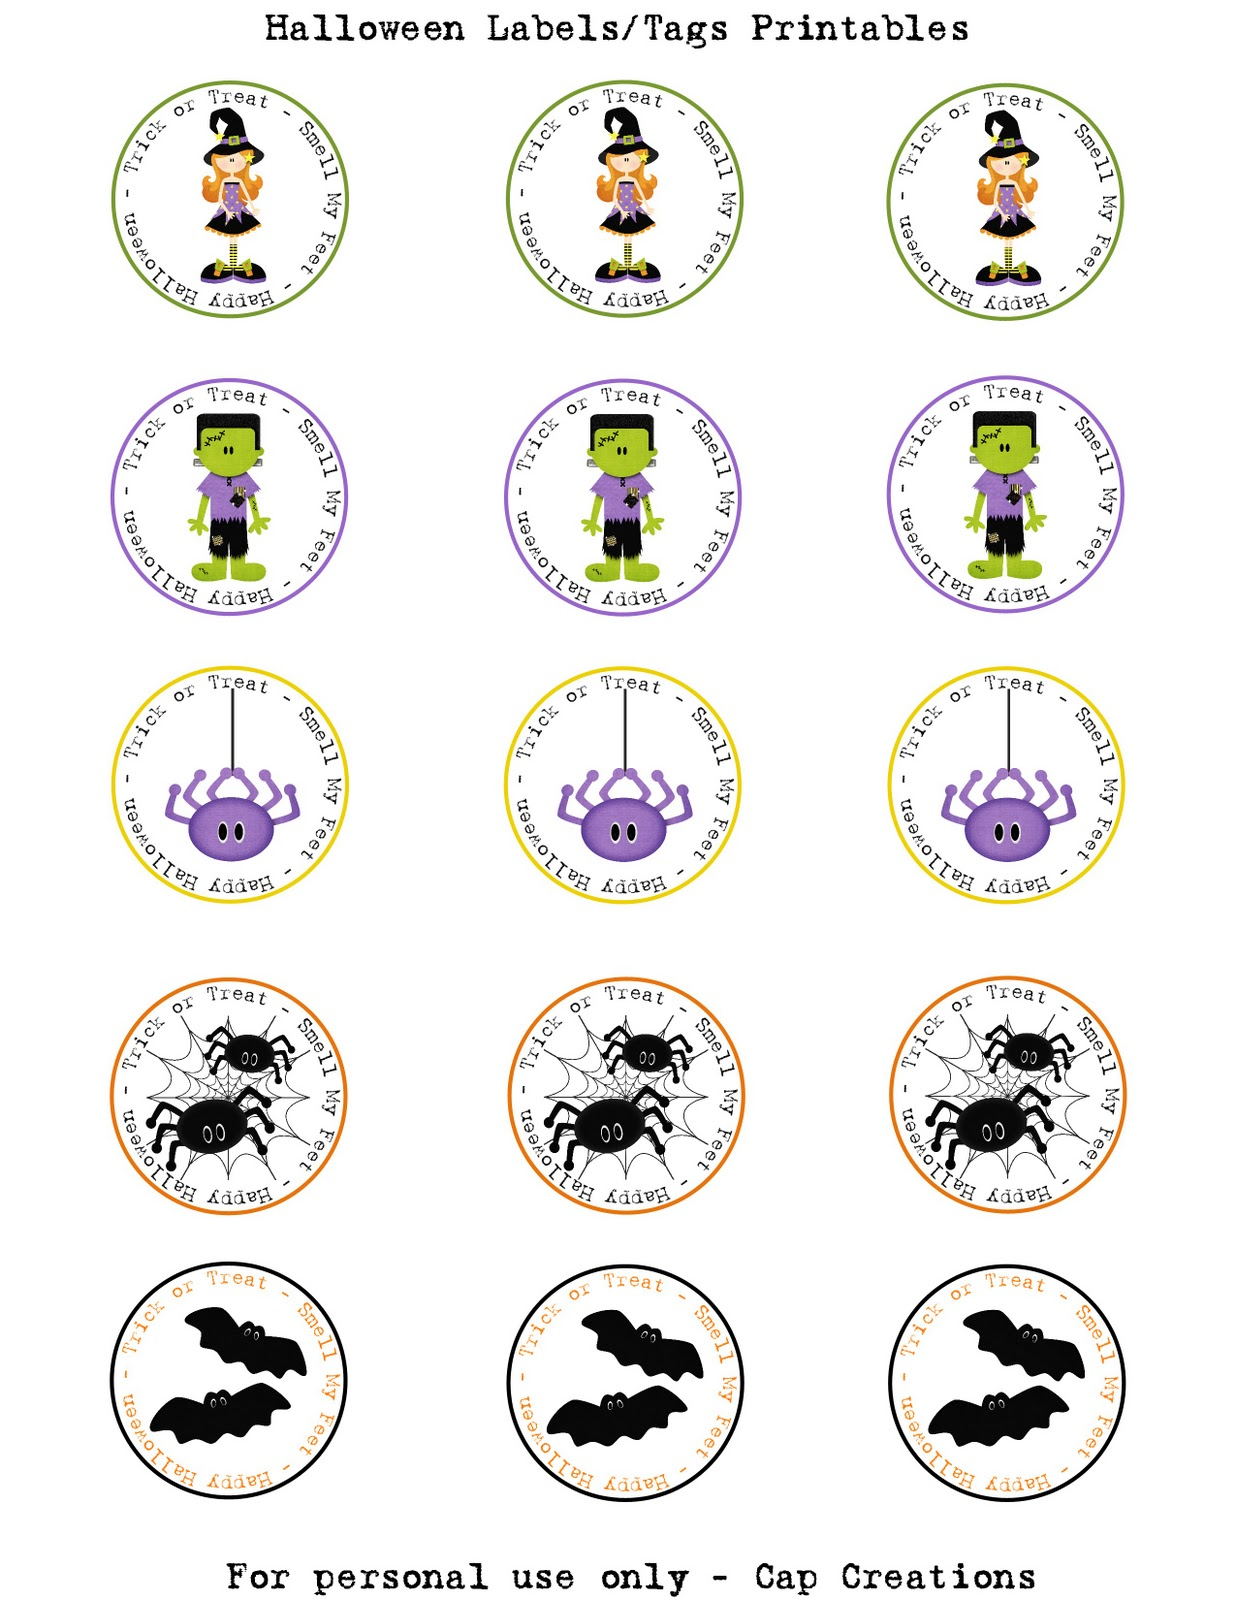 Fan image with regard to halloween stickers printable